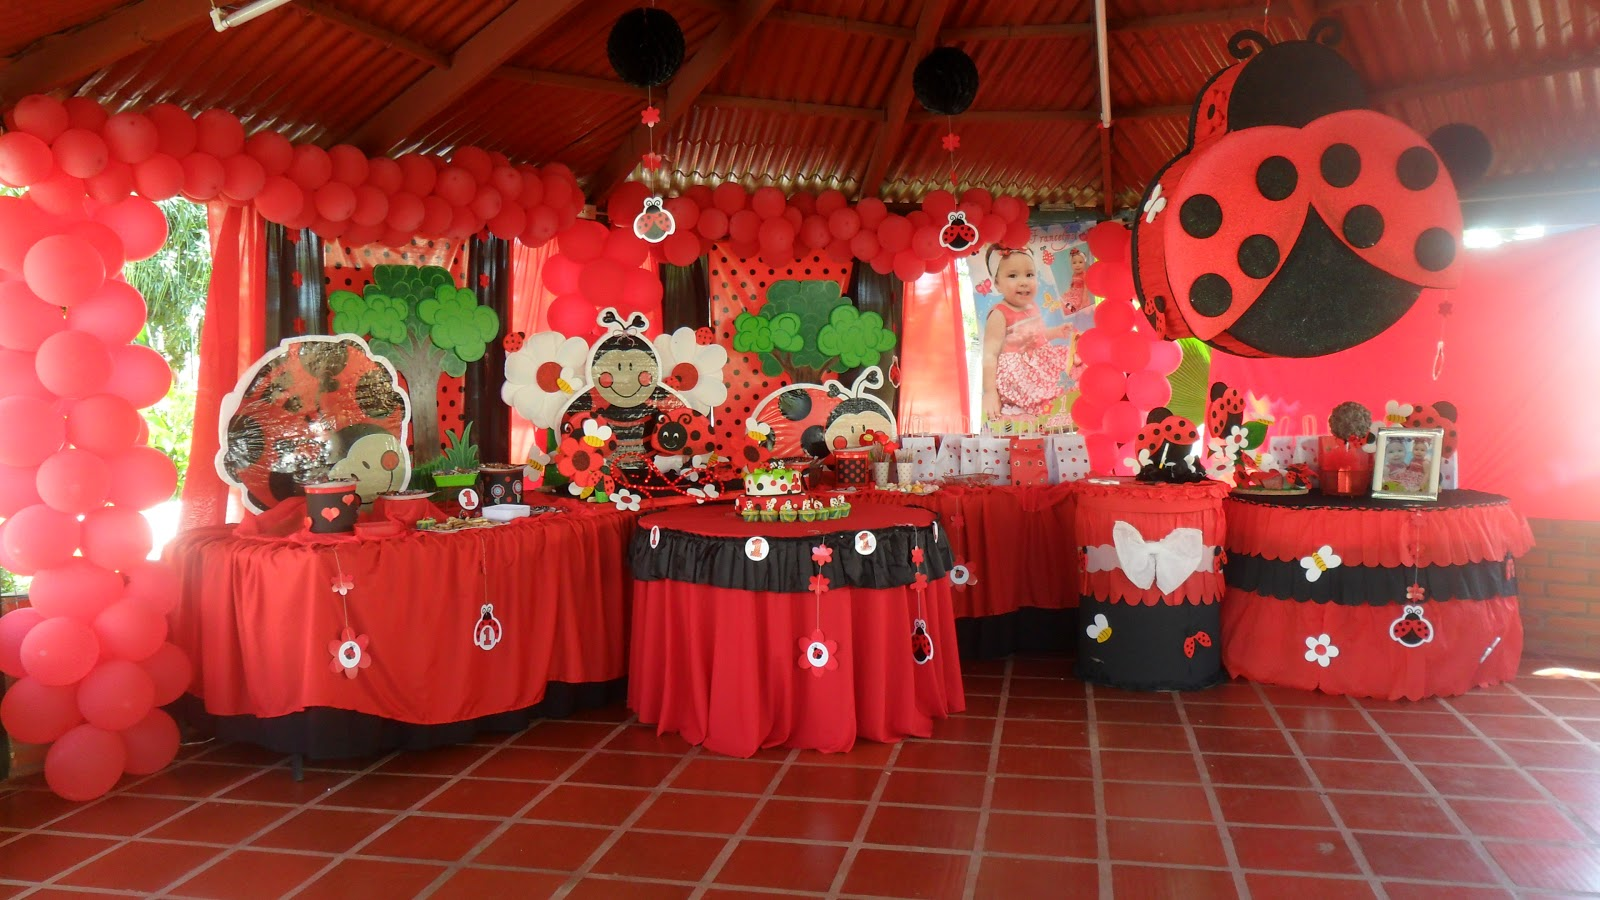 Ursula newman eventos decoraci n fiesta infantil ladybug for Cosas de decoracion